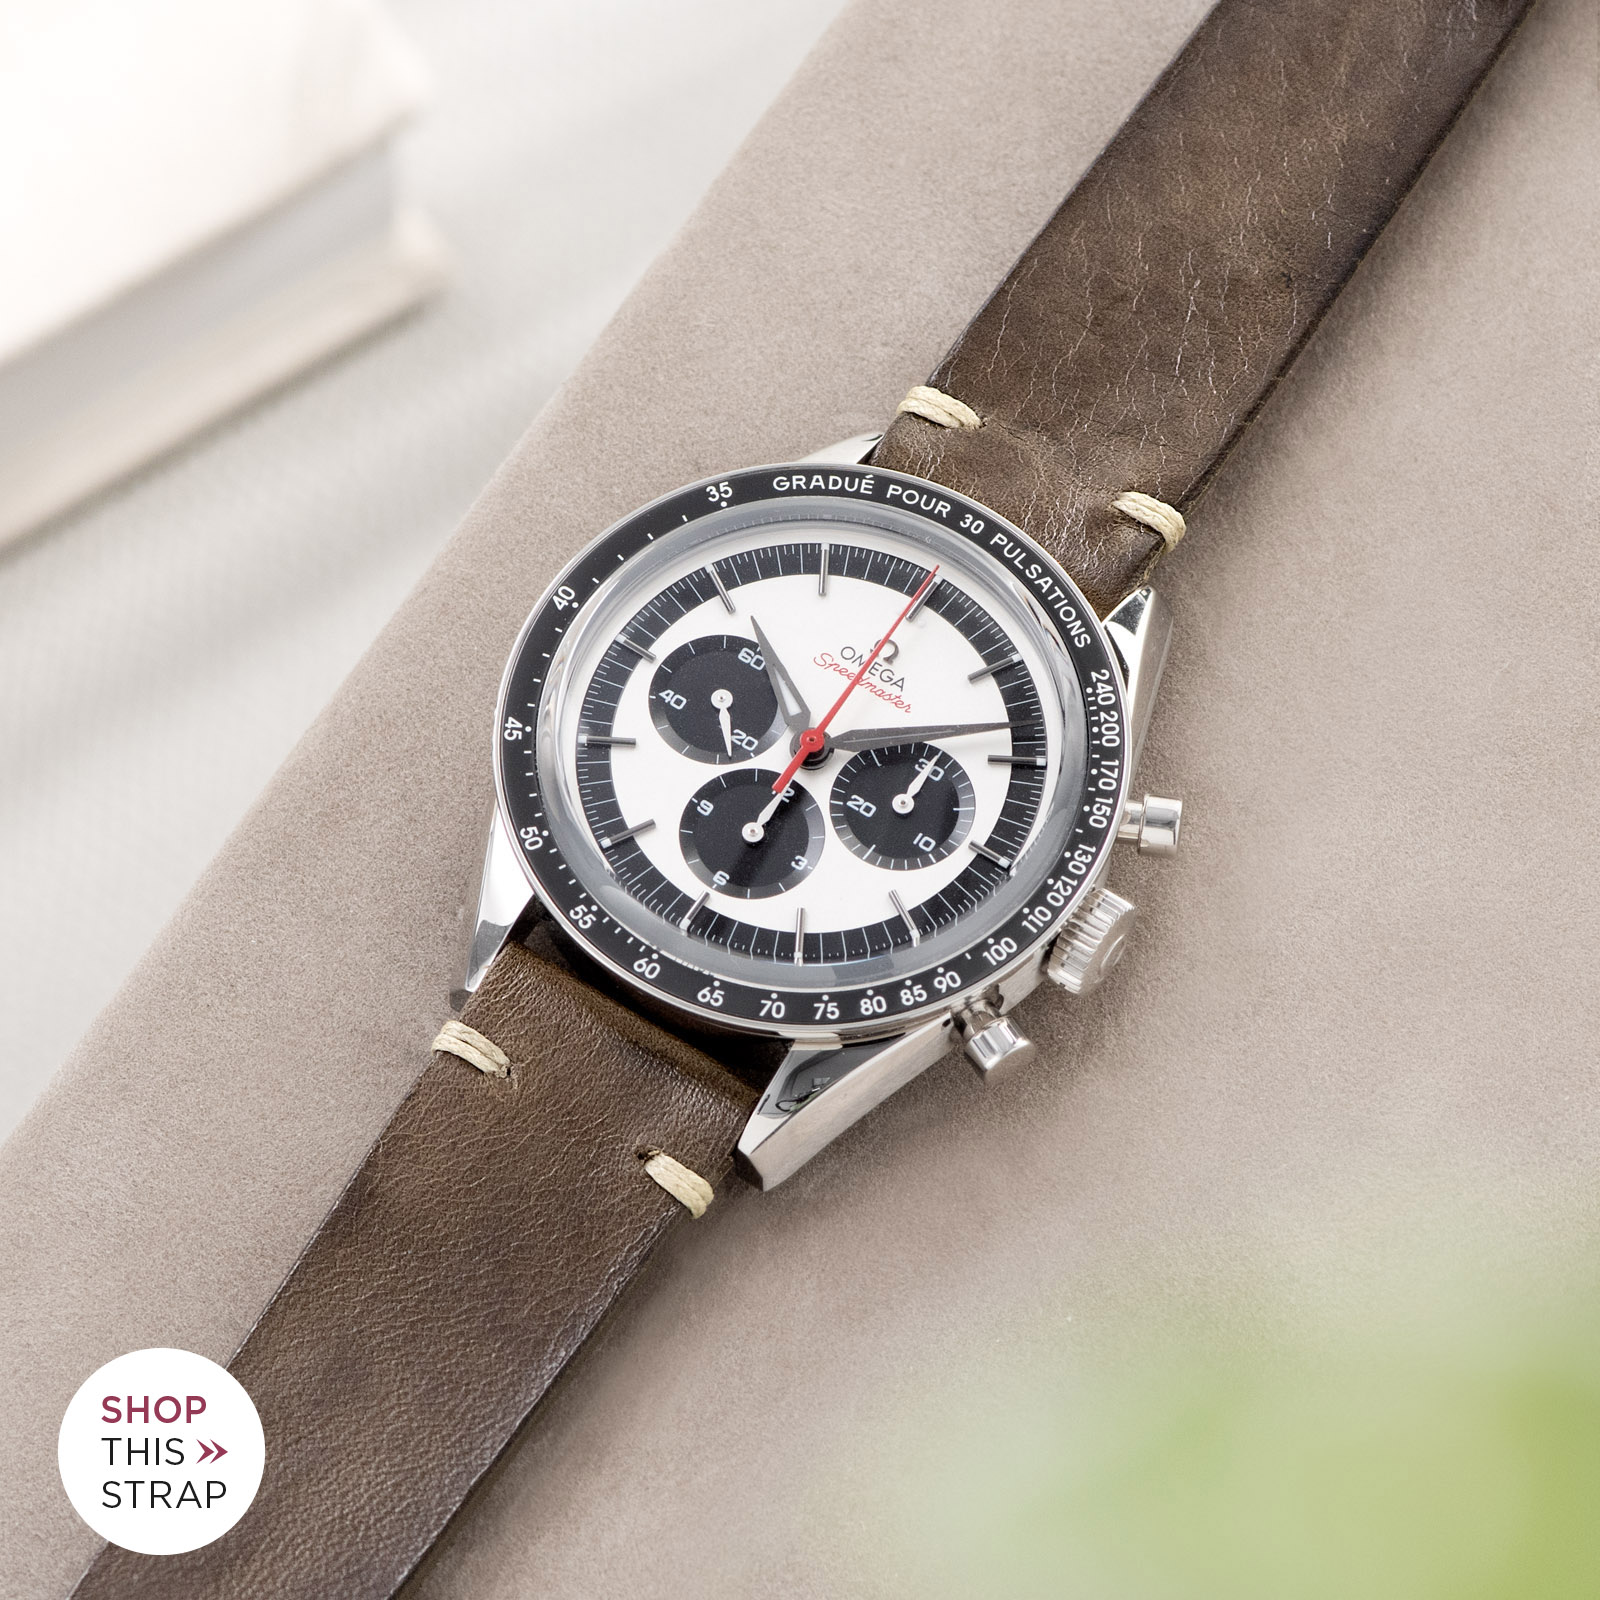 Bulang and Sons_Strap Guide_Omega Speedmaster 2998_Smokeyjack Grey Leather Watch Strap